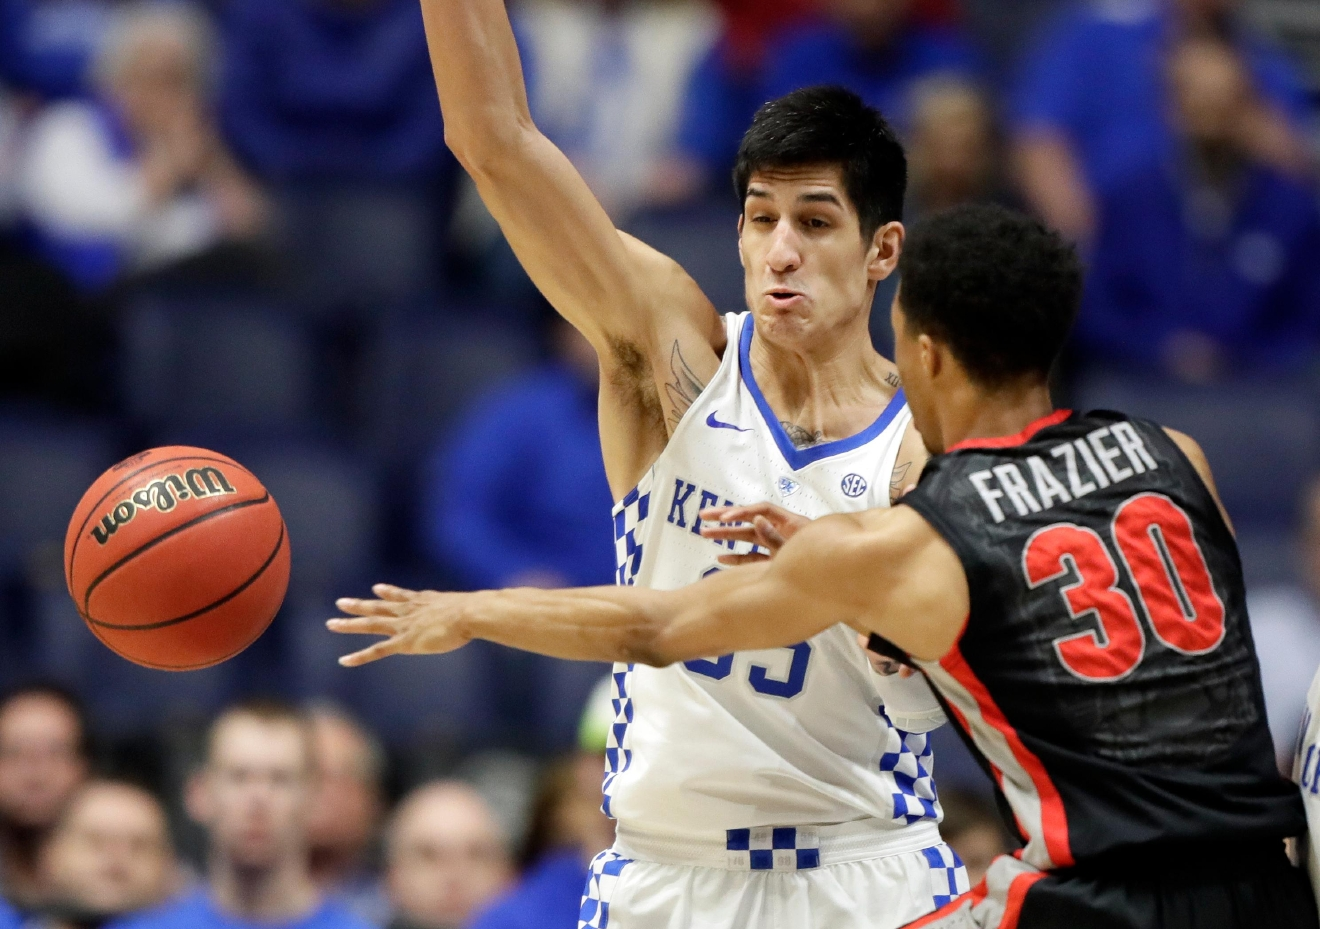 Georgia guard J.J. Frazier (30) passes past Kentucky forward Derek Willis during the first half of an NCAA college basketball game at the Southeastern Conference tournament Friday, March 10, 2017, in Nashville, Tenn. (AP Photo/Wade Payne)